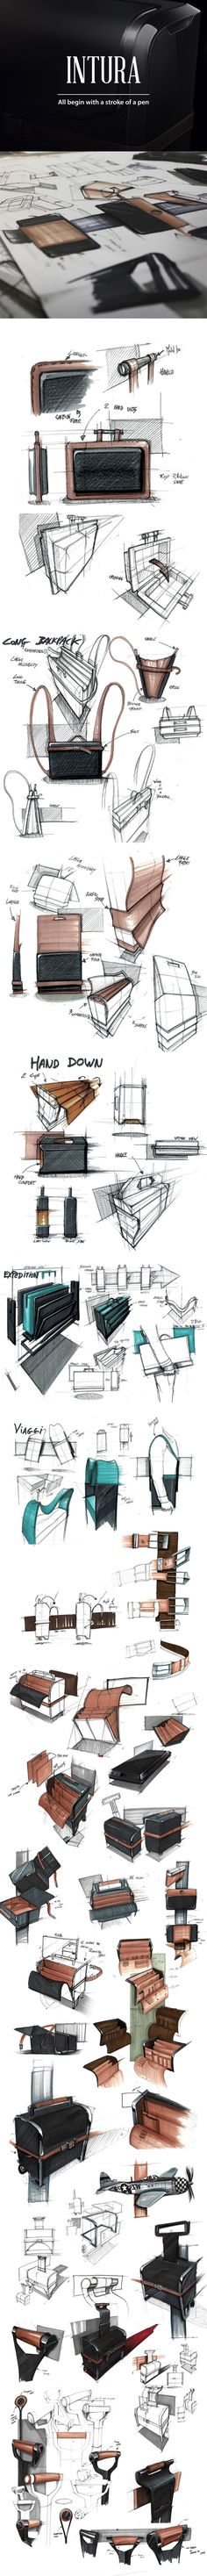 AIRLINE PILOT CASE - PERSONAL SKETCHES AND RENDERINGS by Francois Baptista, via Behance